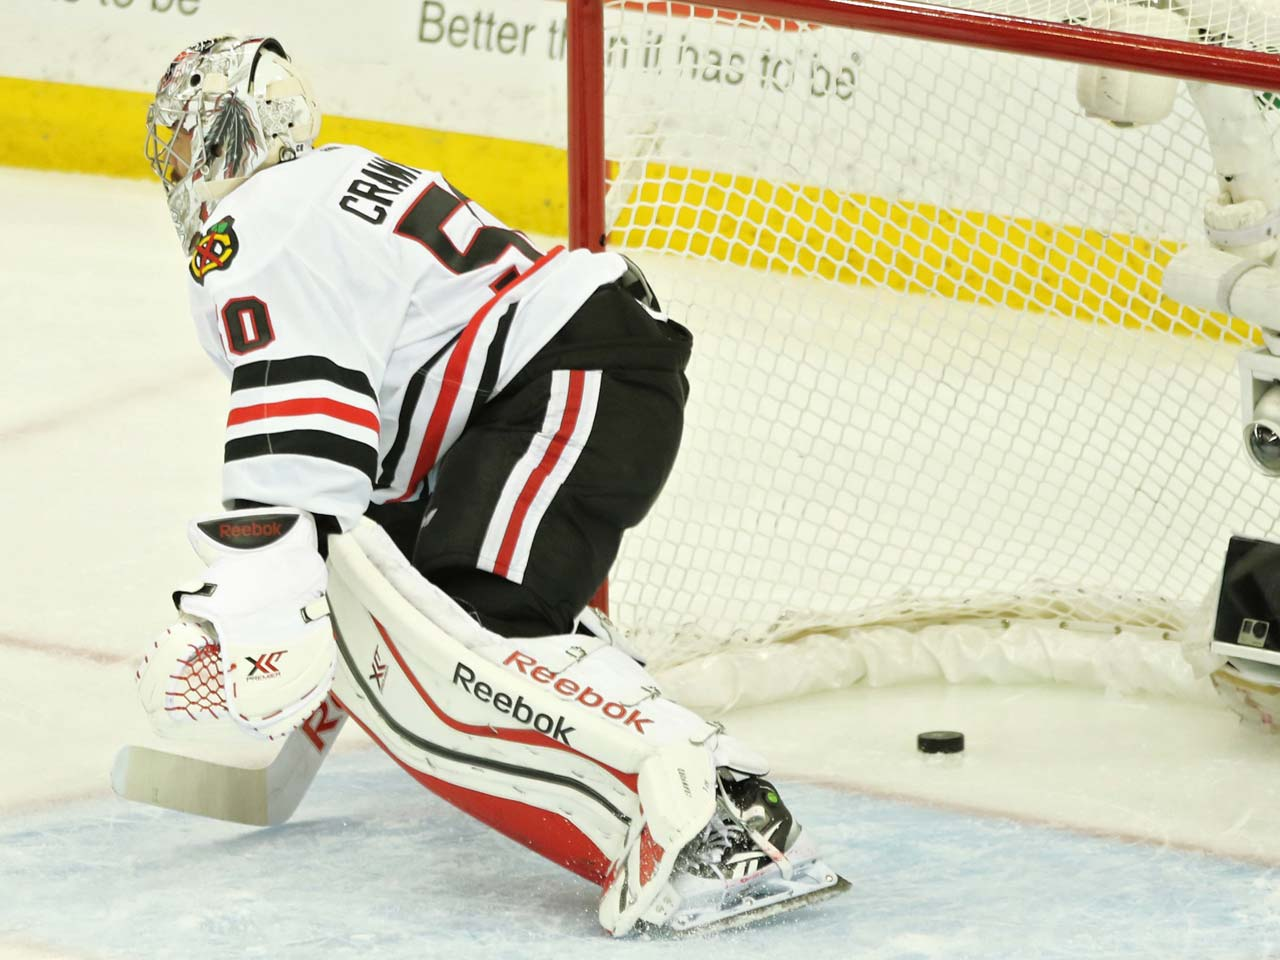 Corey Crawford stands up after he let the puck in for another Lightning goal.